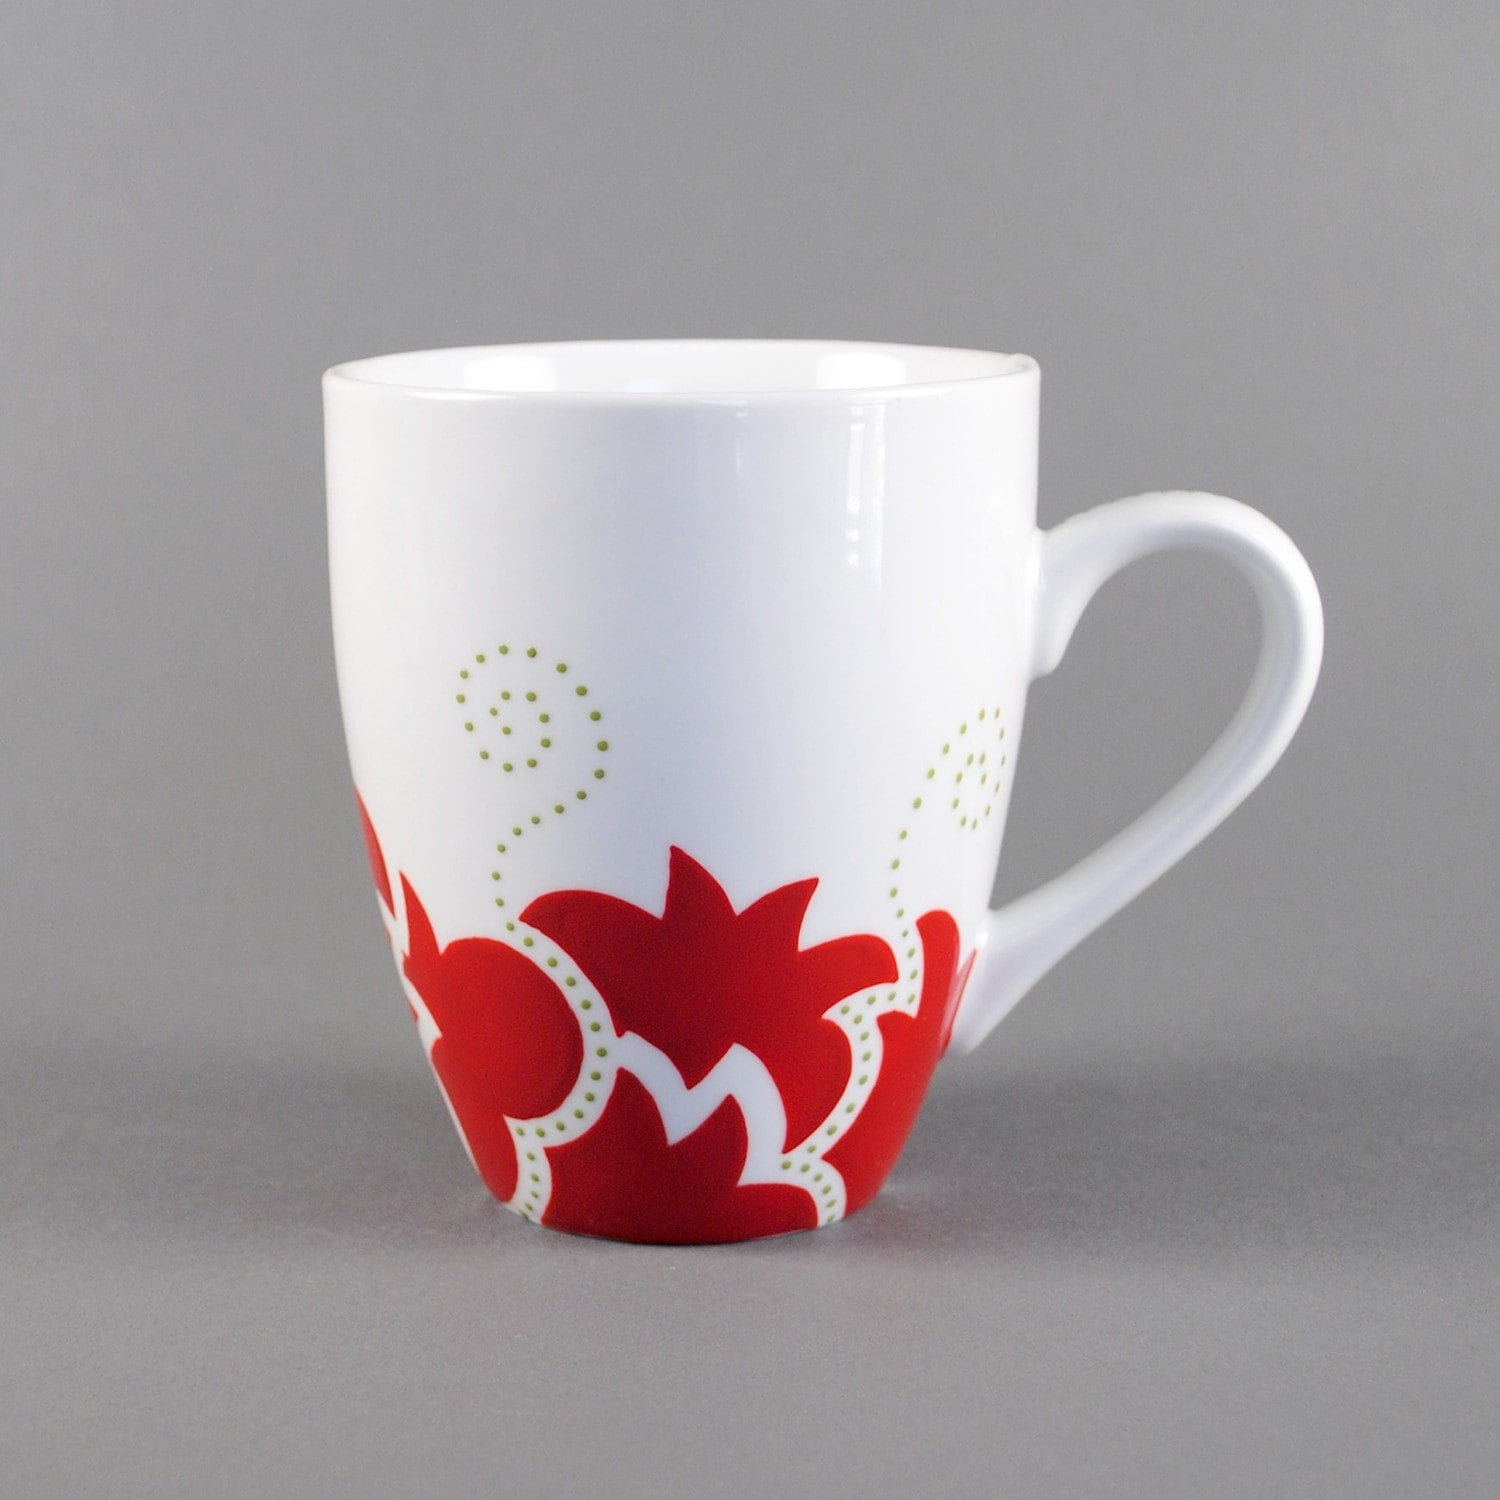 100 Designer Coffee Mugs Billy Tamplin Illustrator